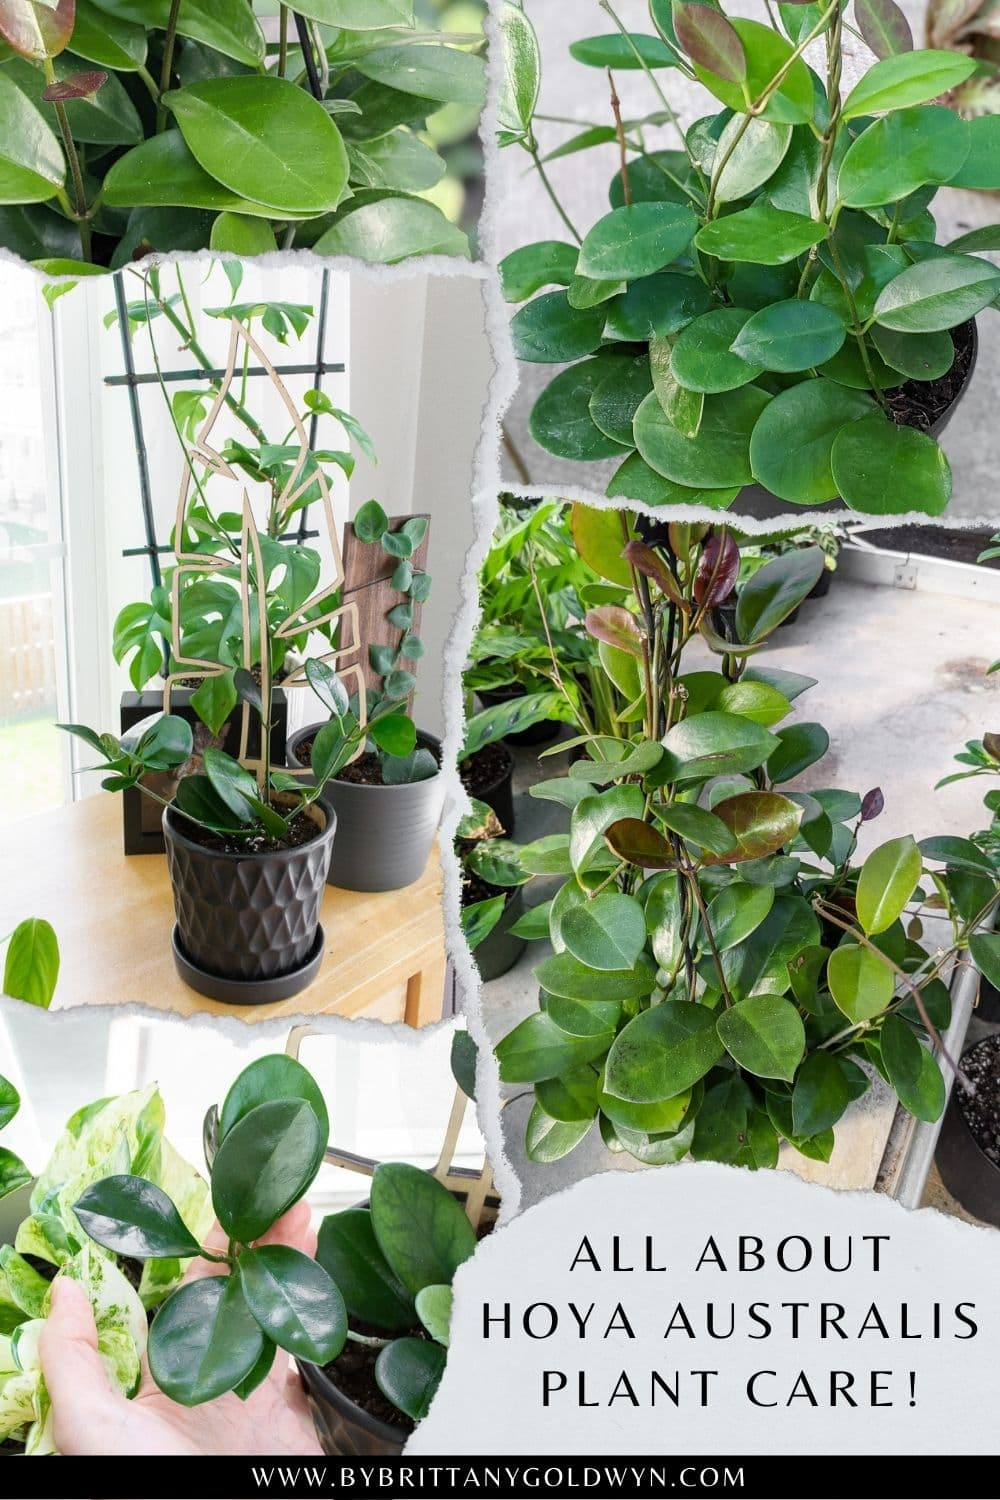 pinnable graphic with images of a hoya australis plant and text overlay about how to care for a hoya australis